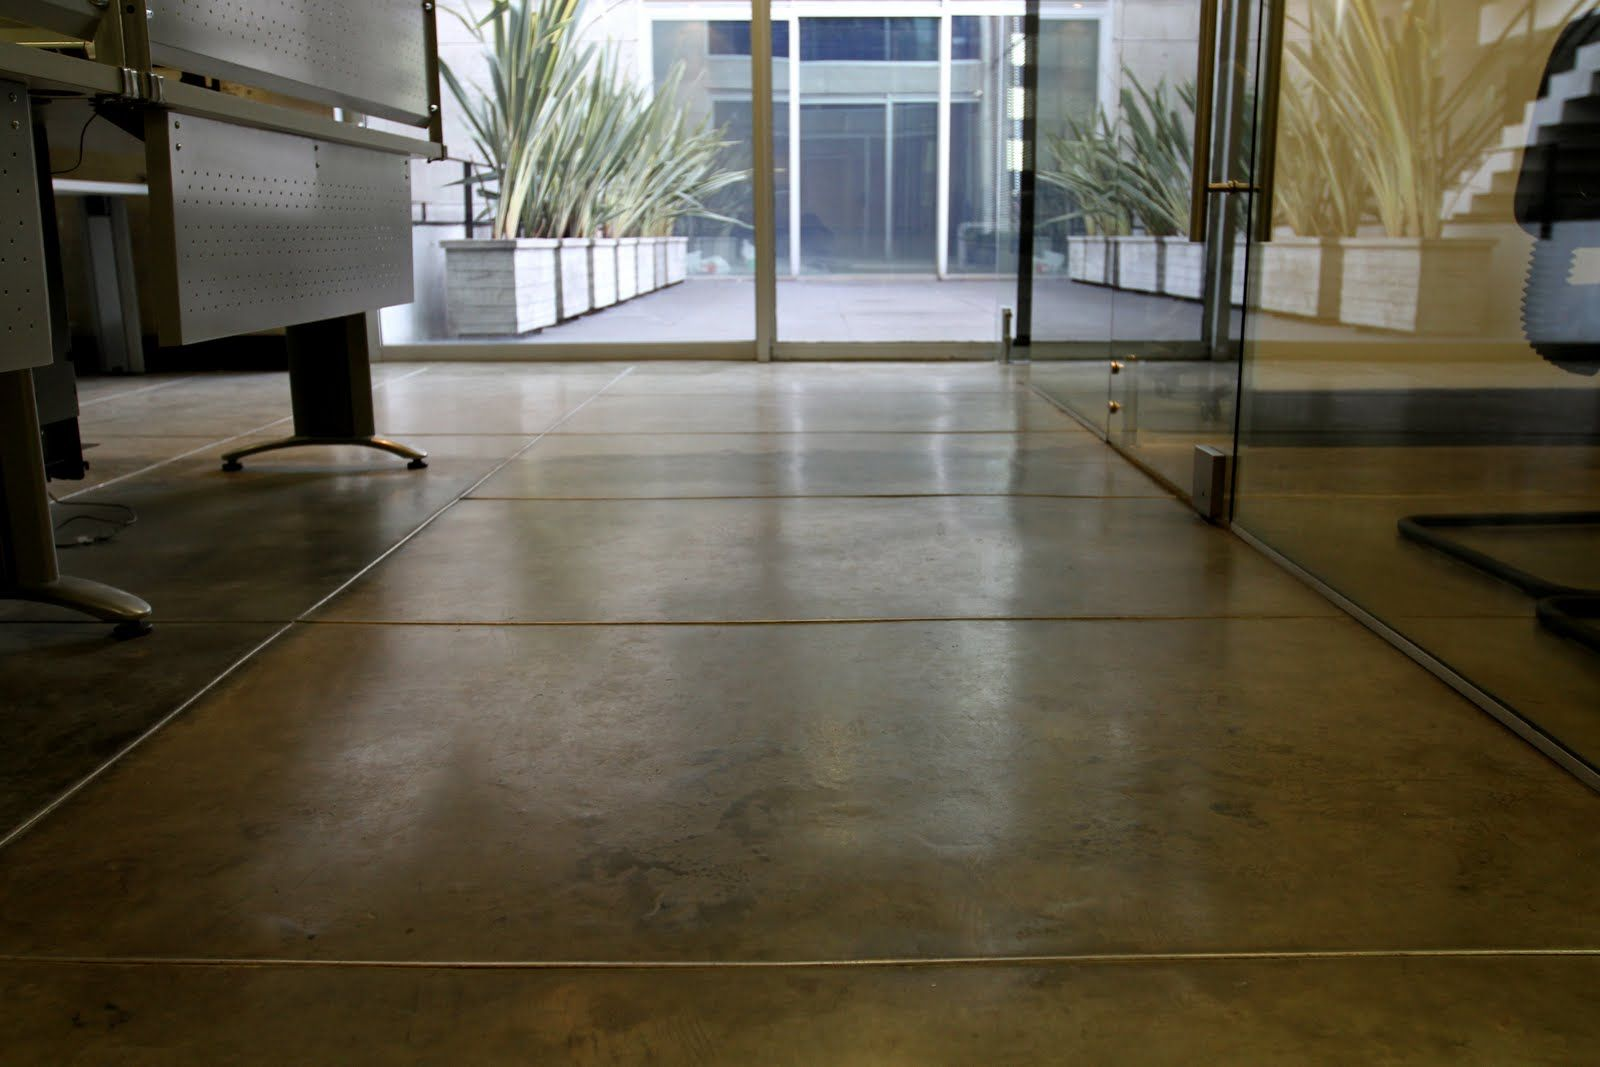 Concrete floor interiors pinterest for Floors on floors